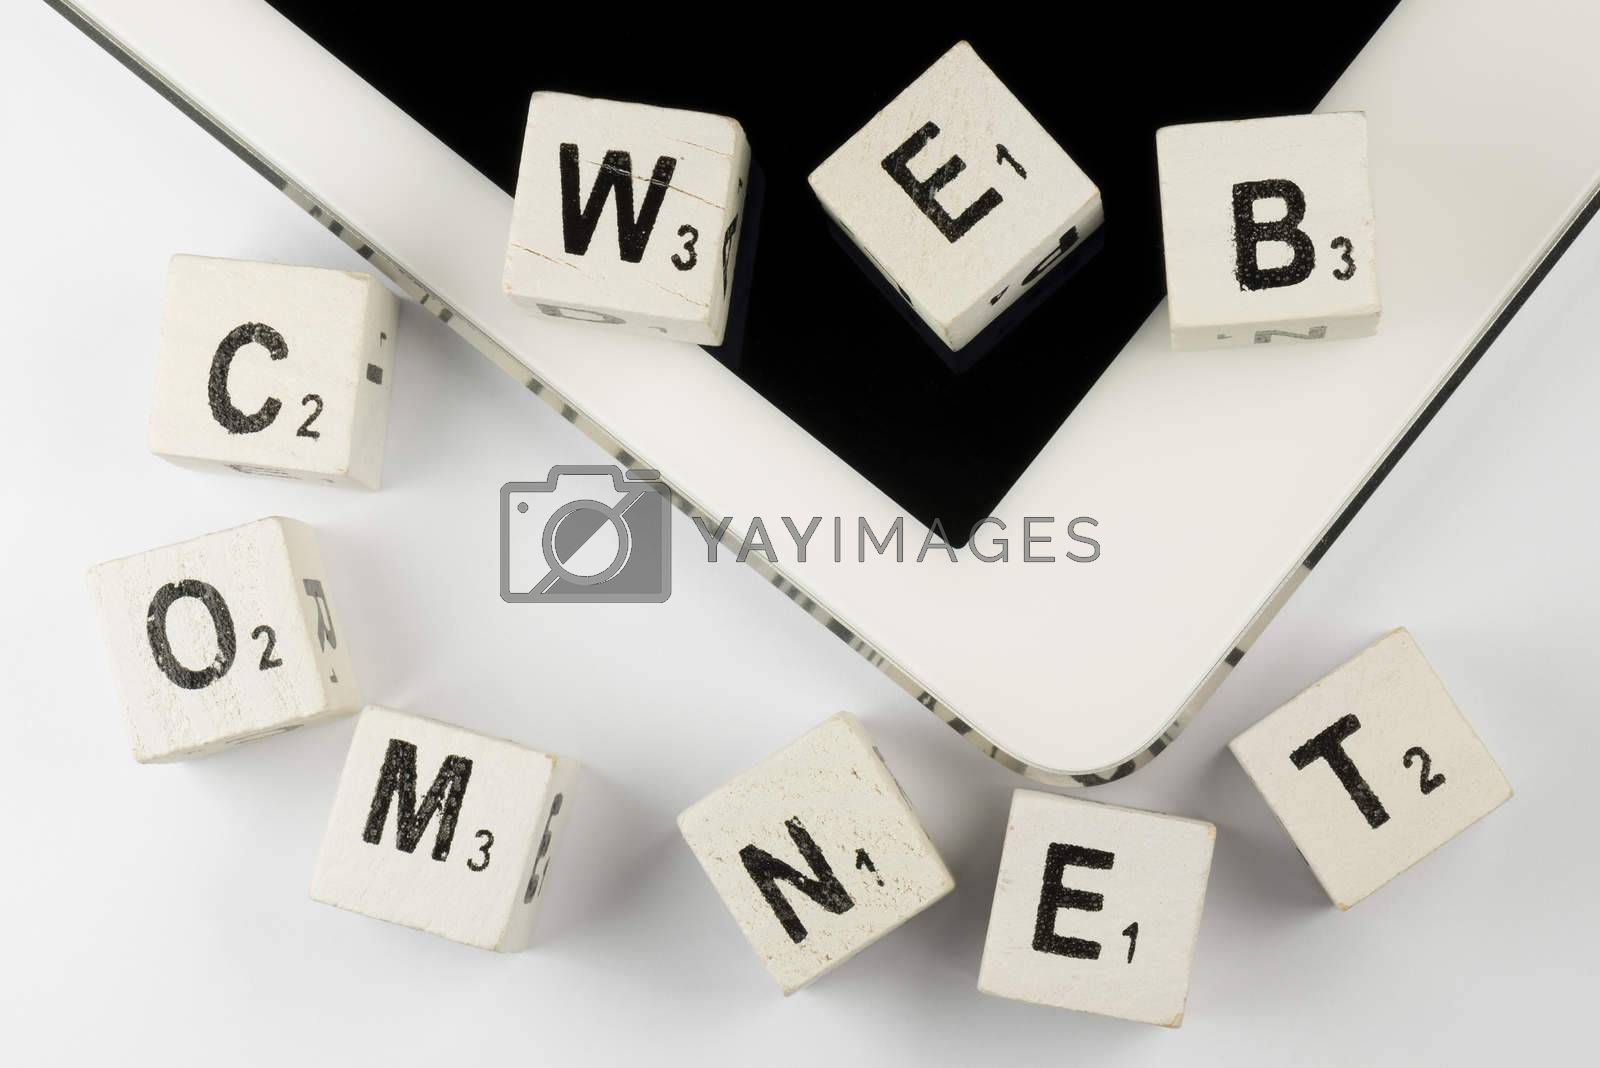 Old wooden letters, as a collage positioned on a modern tablet.